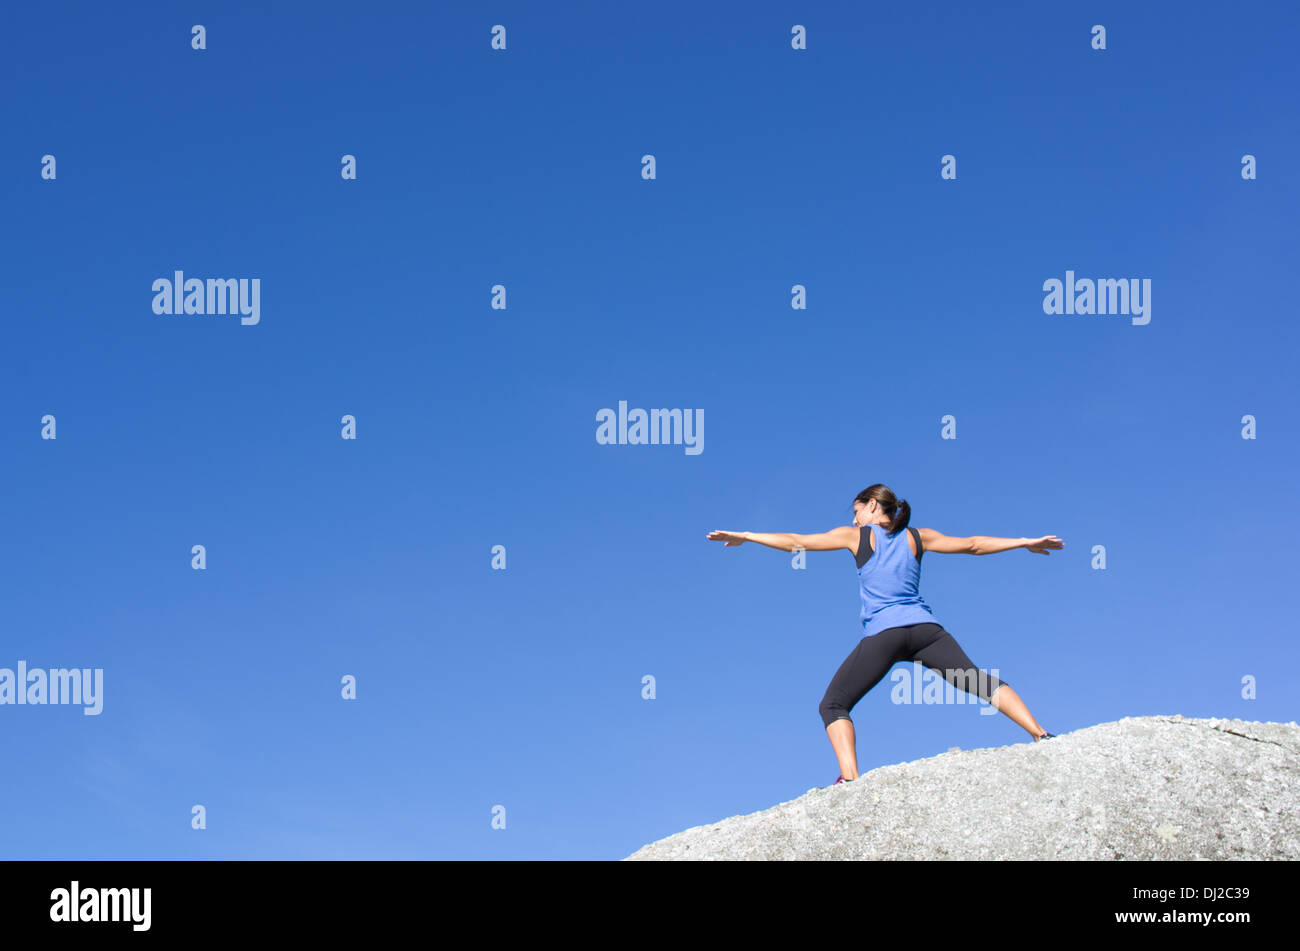 Warrior pose on a white rock against a perfectly blue sky. - Stock Image